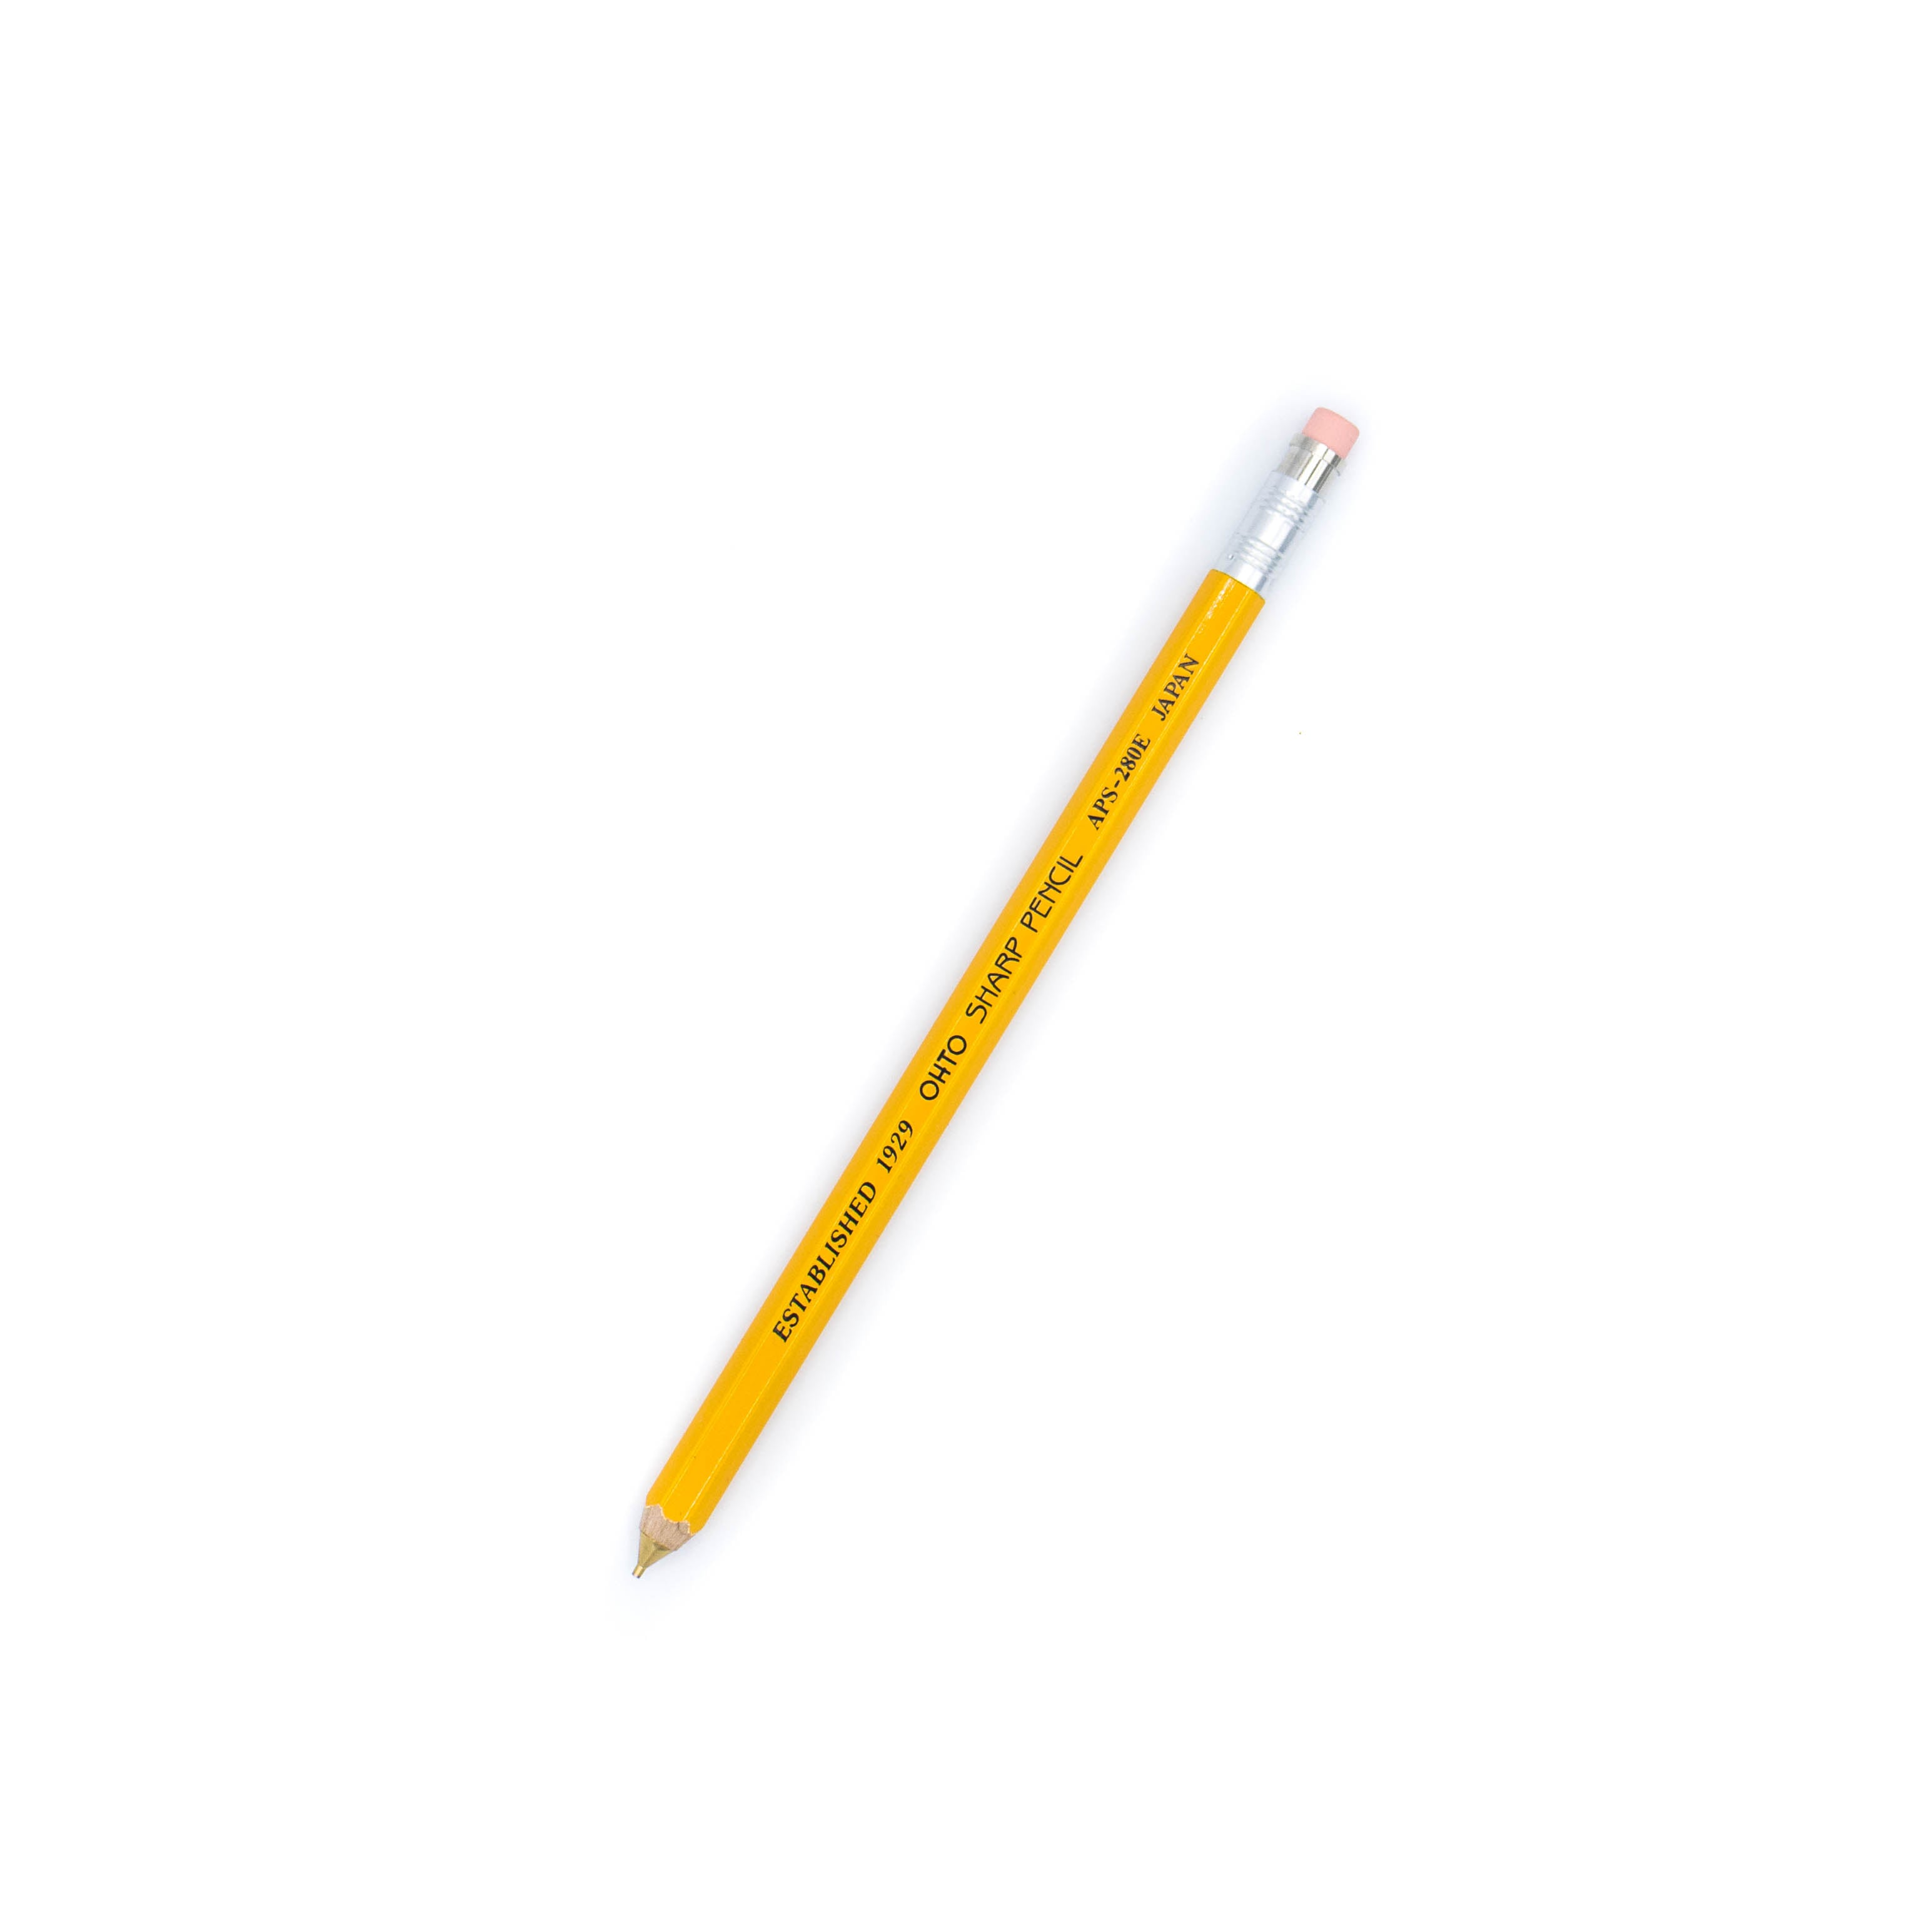 Ohto Wooden Mechanical Pencil 05mm Yellow